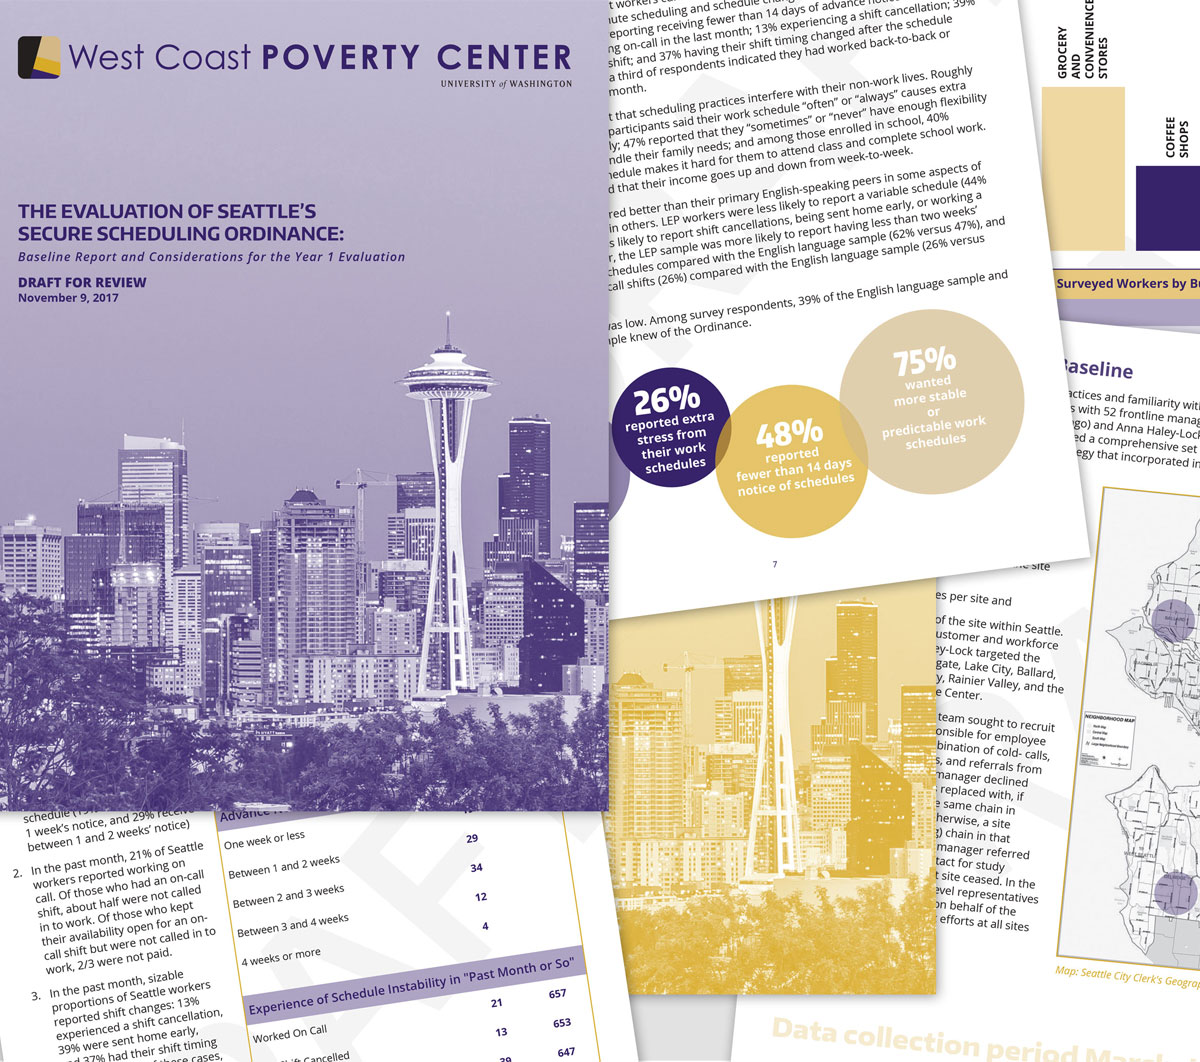 West Coast Poverty Center Report image